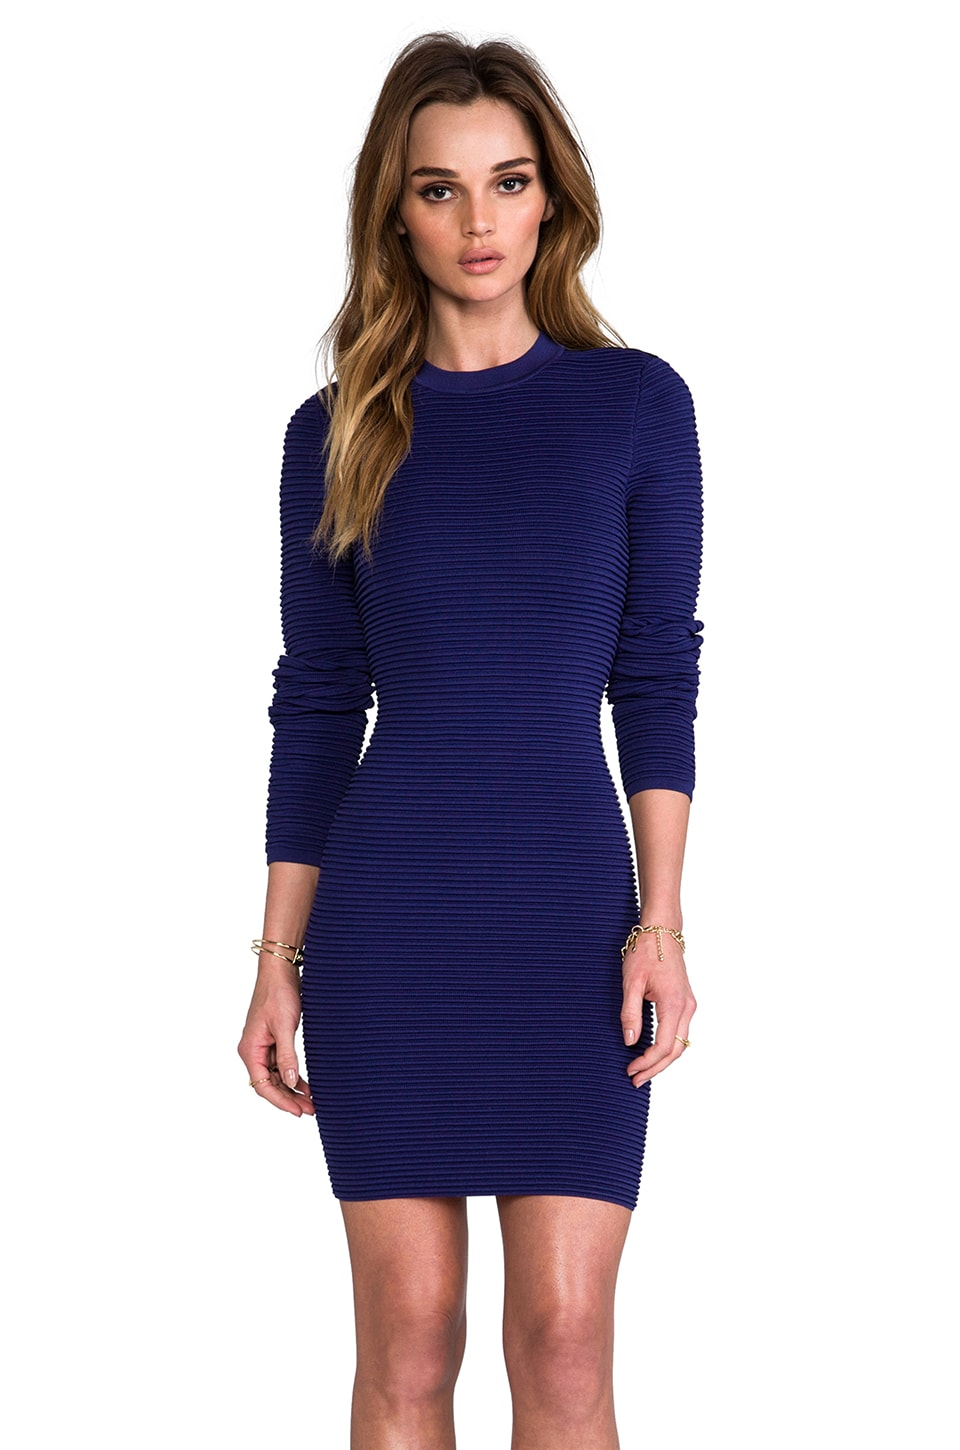 Torn by Ronny Kobo Malena Dress in Navy/Black